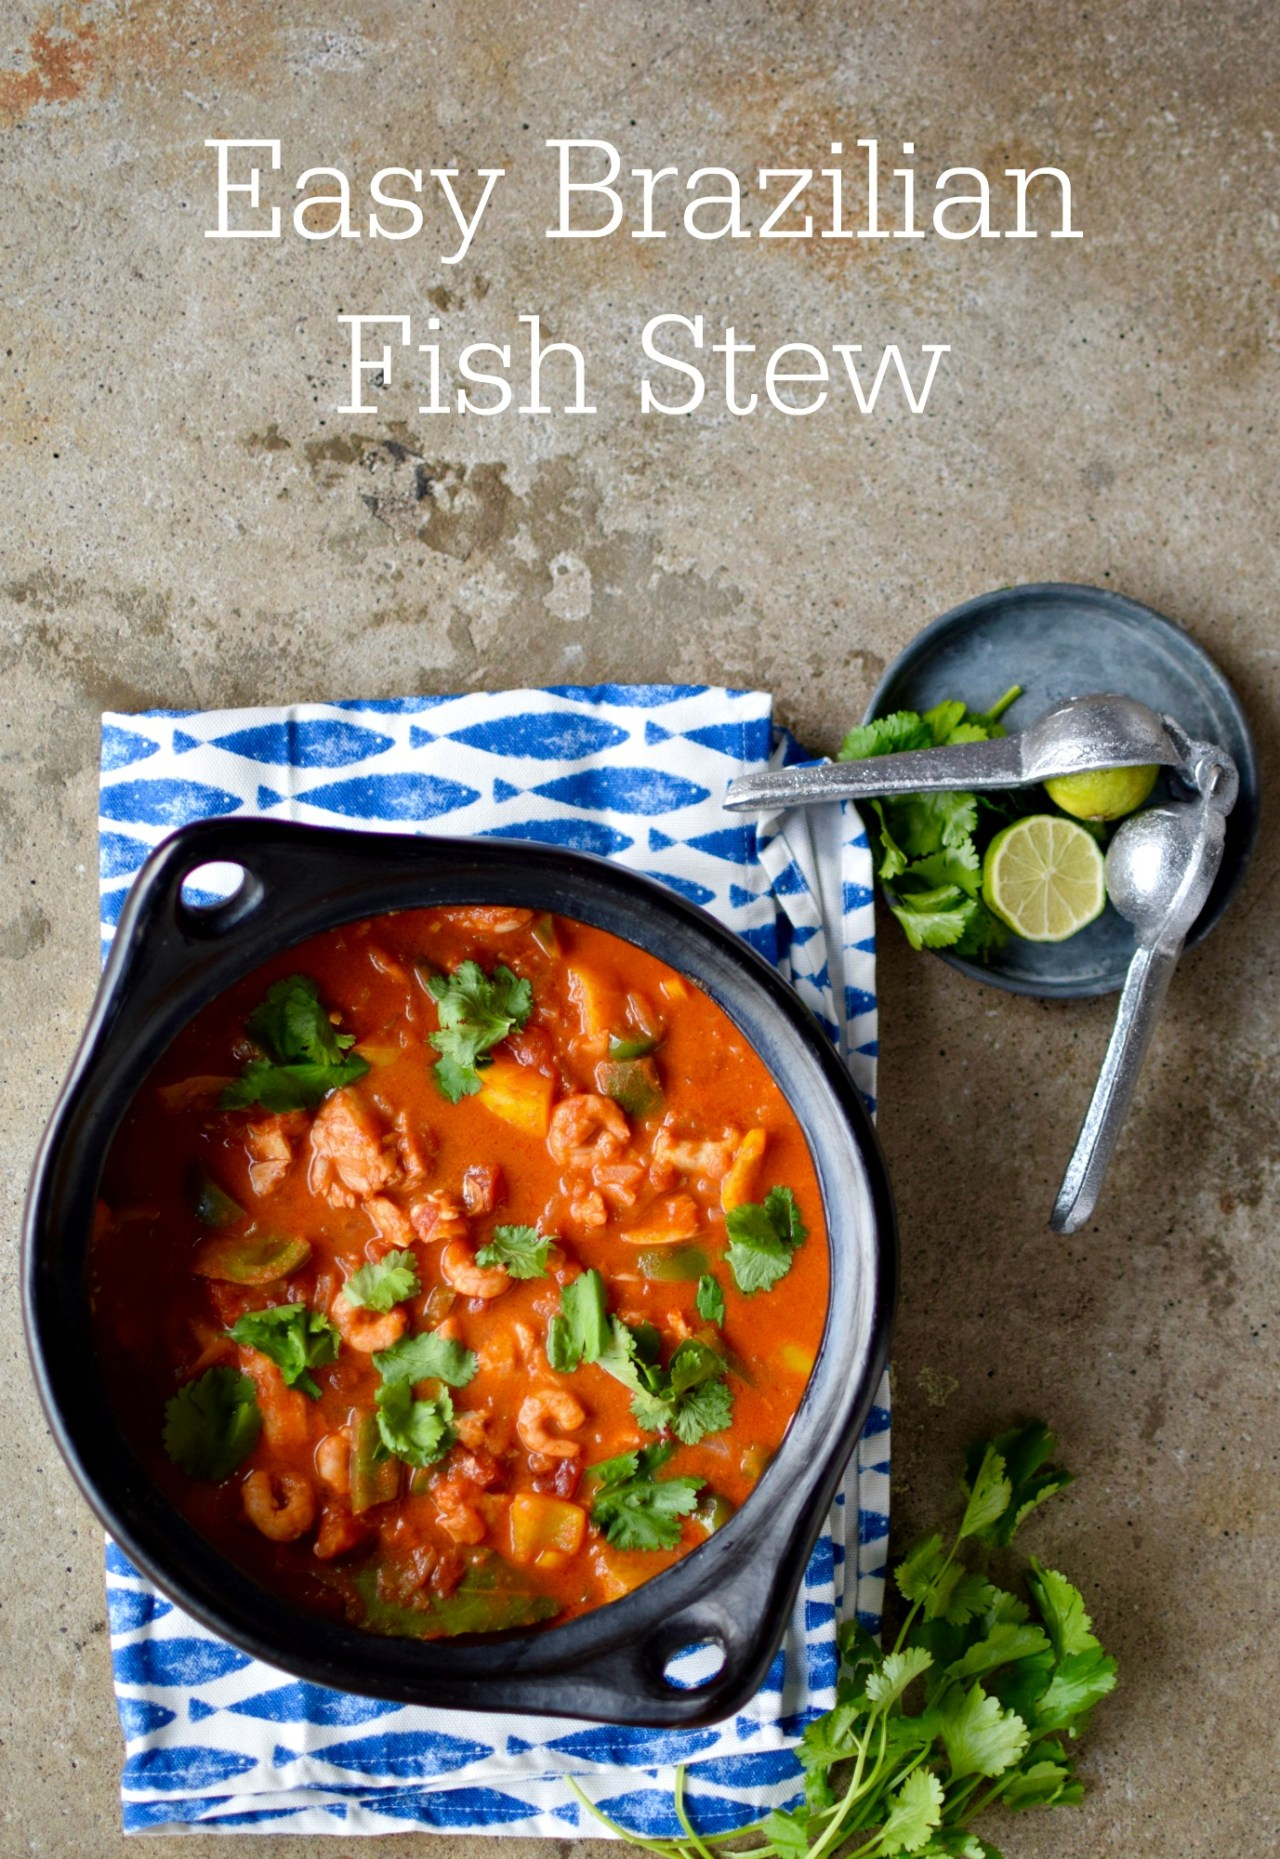 Creamy coconut milk is the secret to turning frozen fish, onions, peppers, tomatoes and leaf coriander from a great fish stew to an amazing fish stew. Try this super easy and healthy family-friendly recipe tonight!